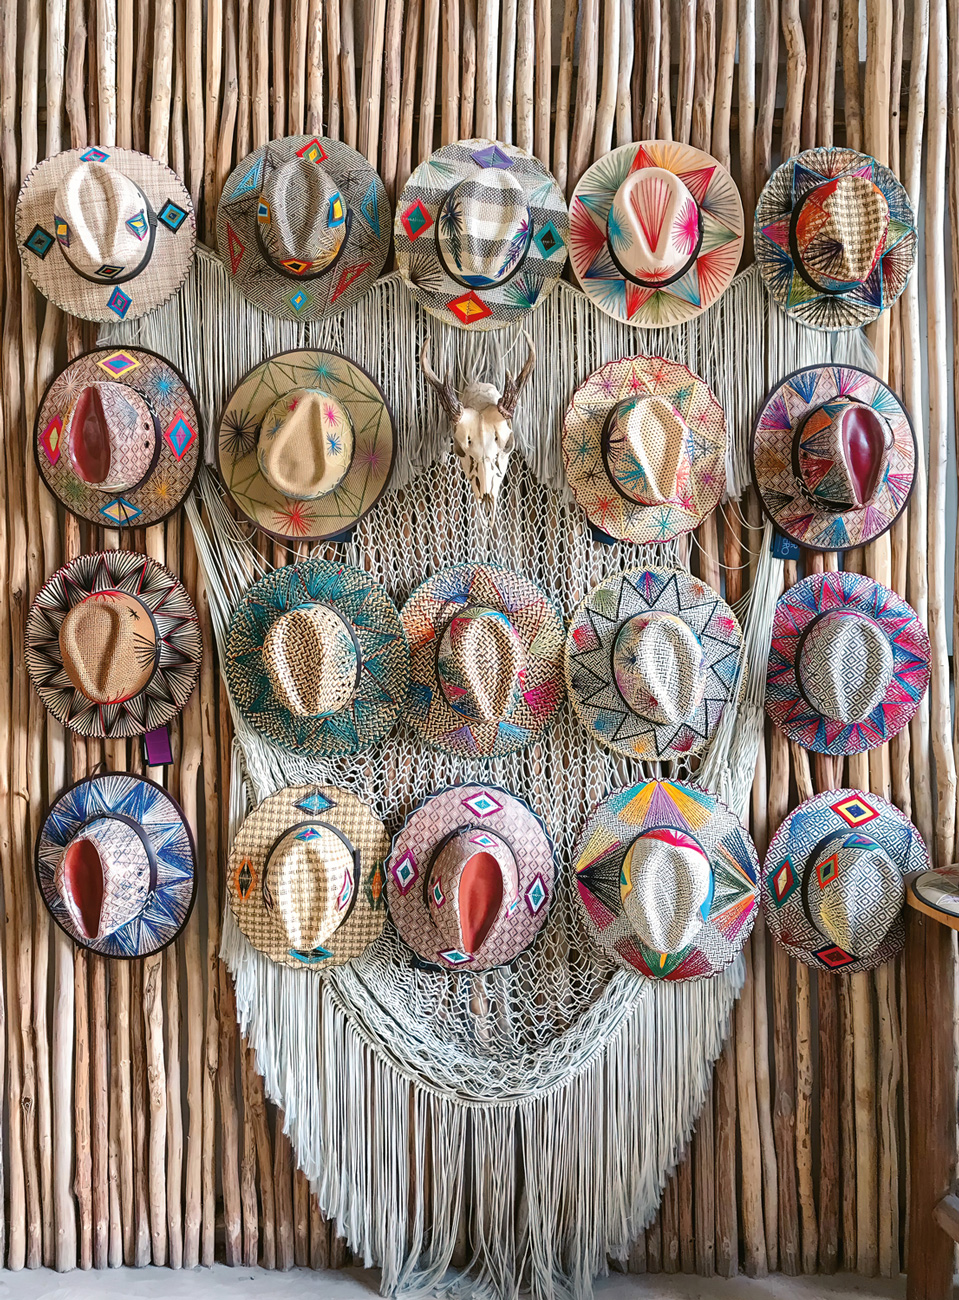 Hats of Mexico Mexico Jigsaw Puzzle